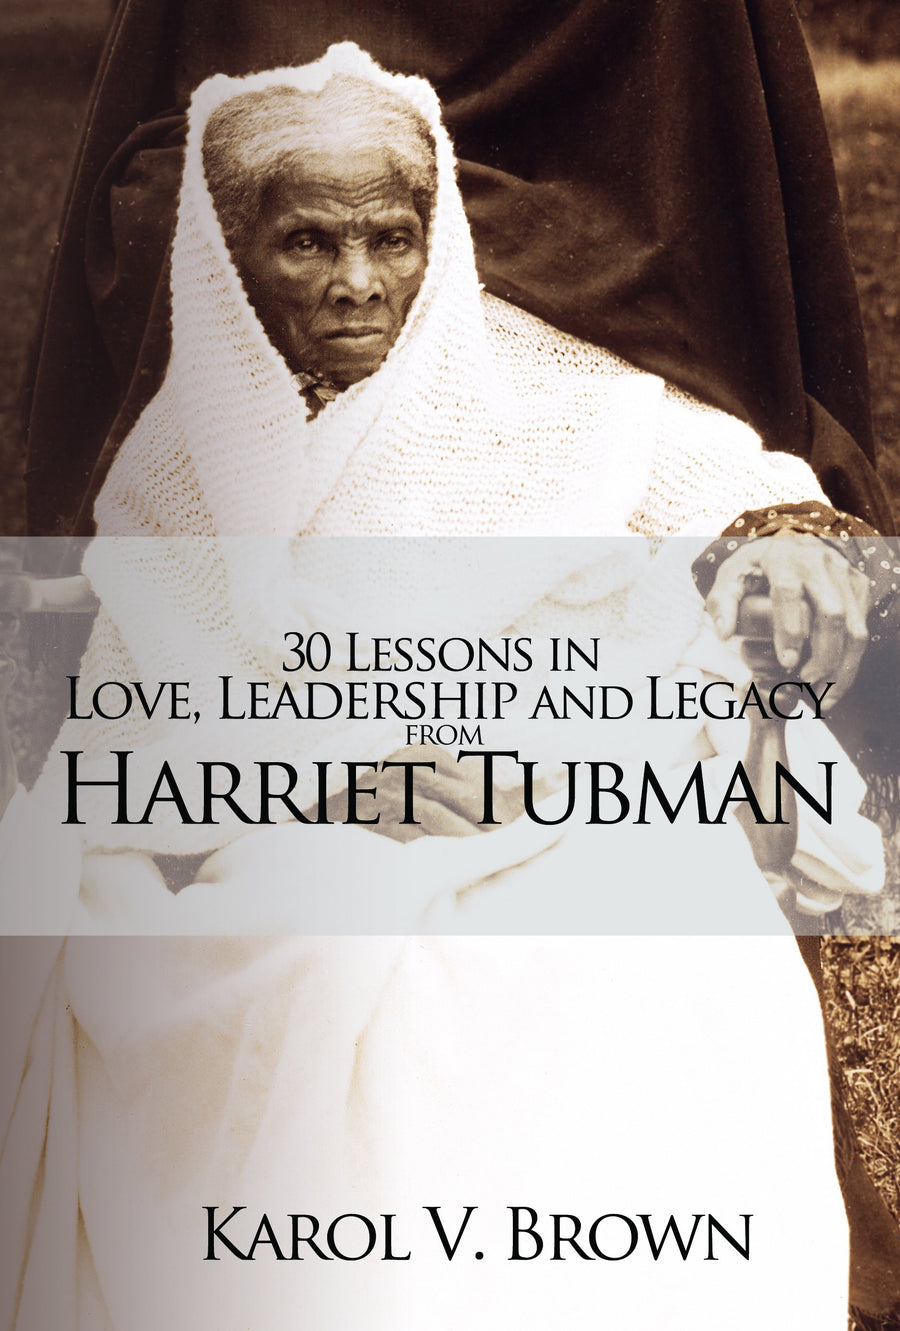 30 Lessons in Love, Leadership, and Legacy from Harriet Tubman Bookmarker